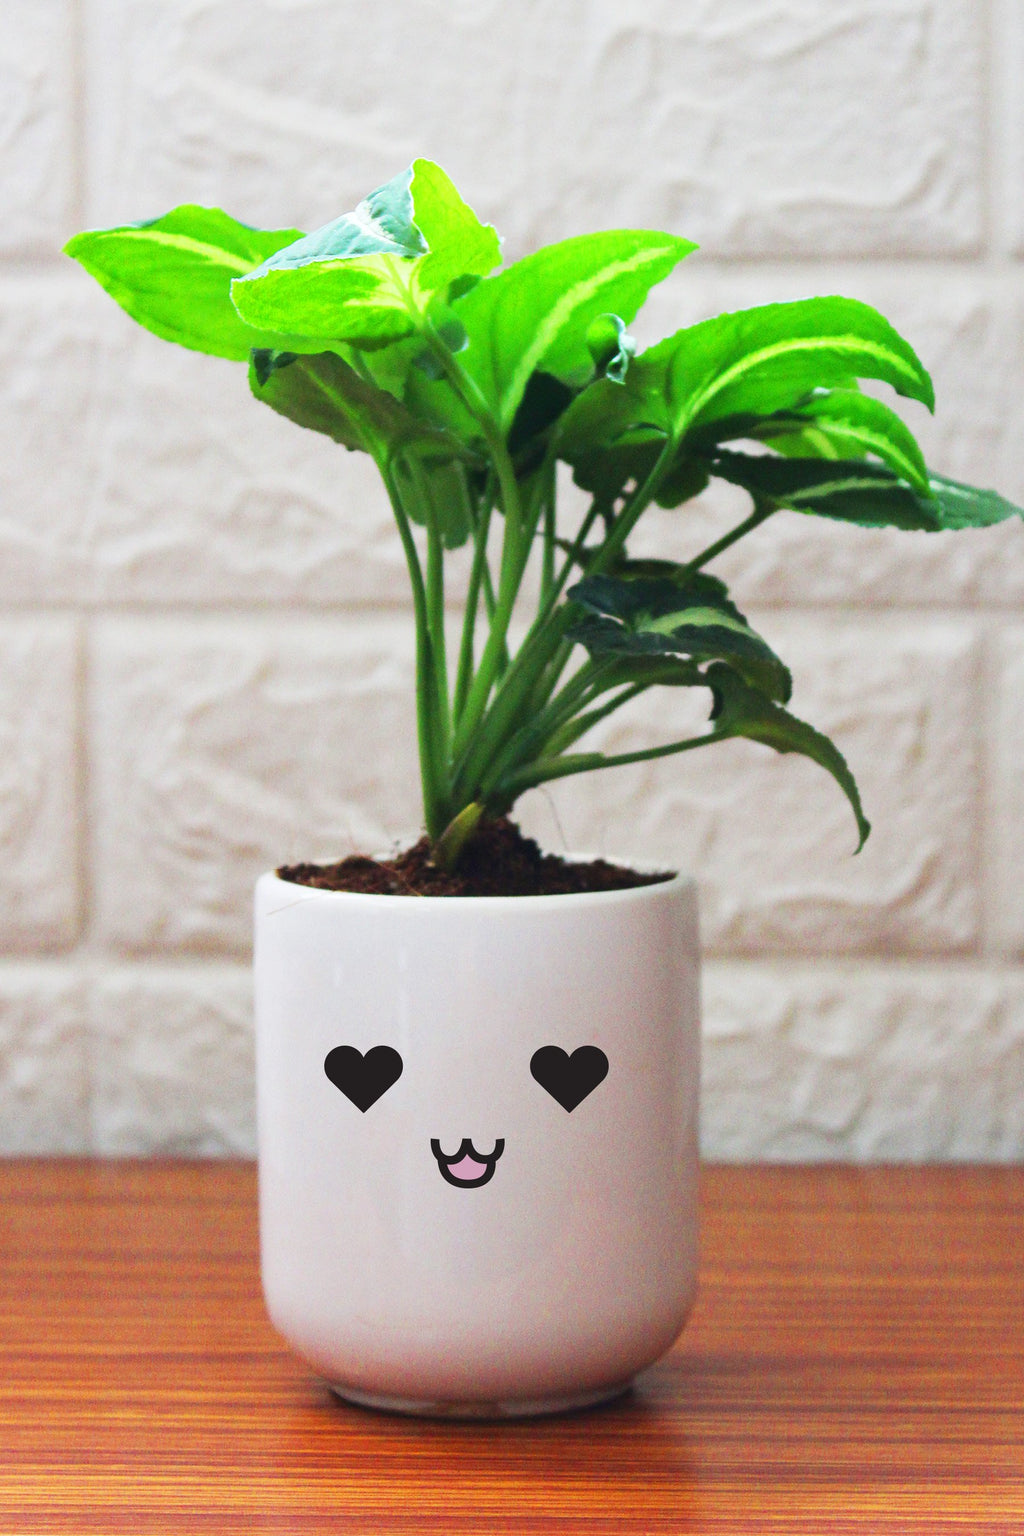 Syngonium Plants in ceramic pots